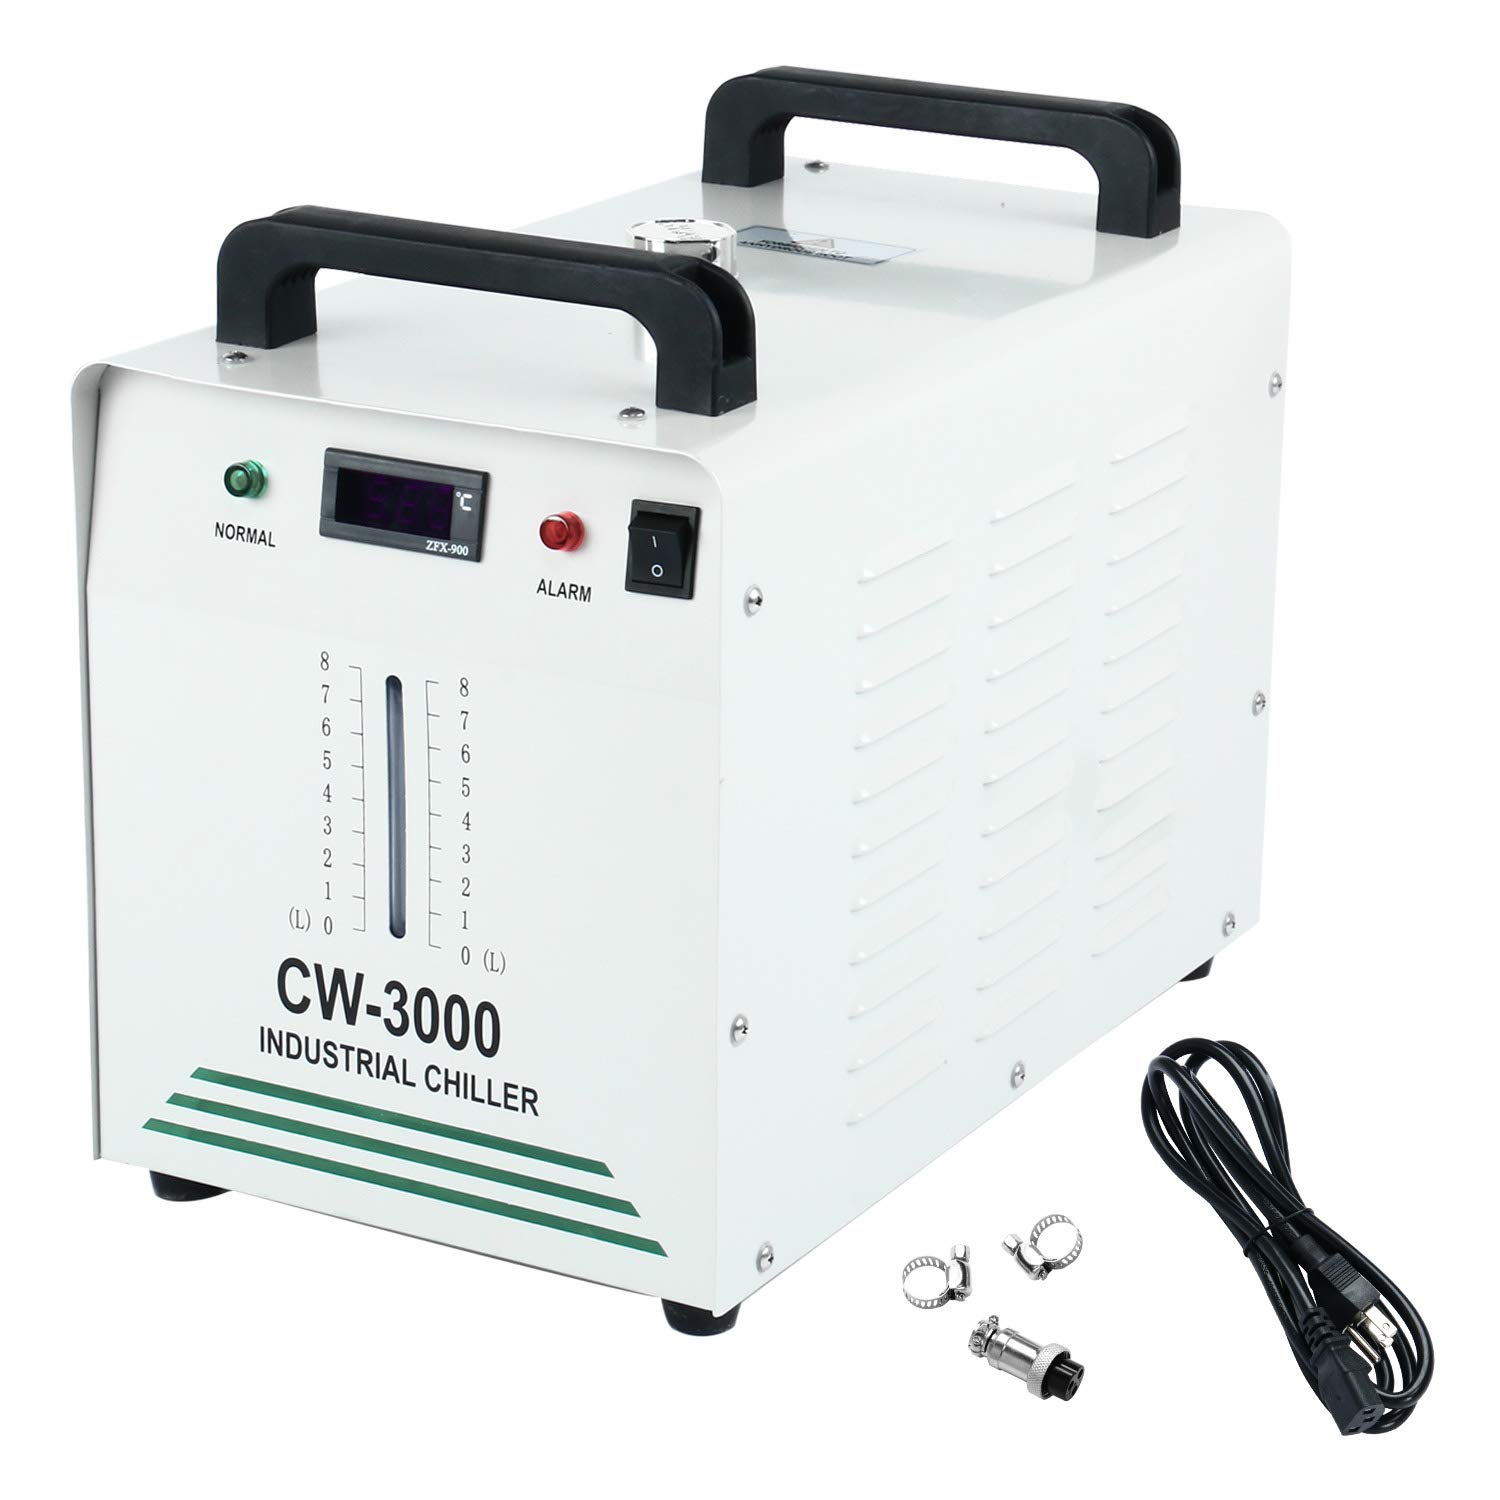 Homend 110V Water Chiller Industrial Water Chiller 9L Capacity CW-3000 Thermolysis Type Industrial Water Cooling Chiller for 60W 80W Laser Engraving Machine